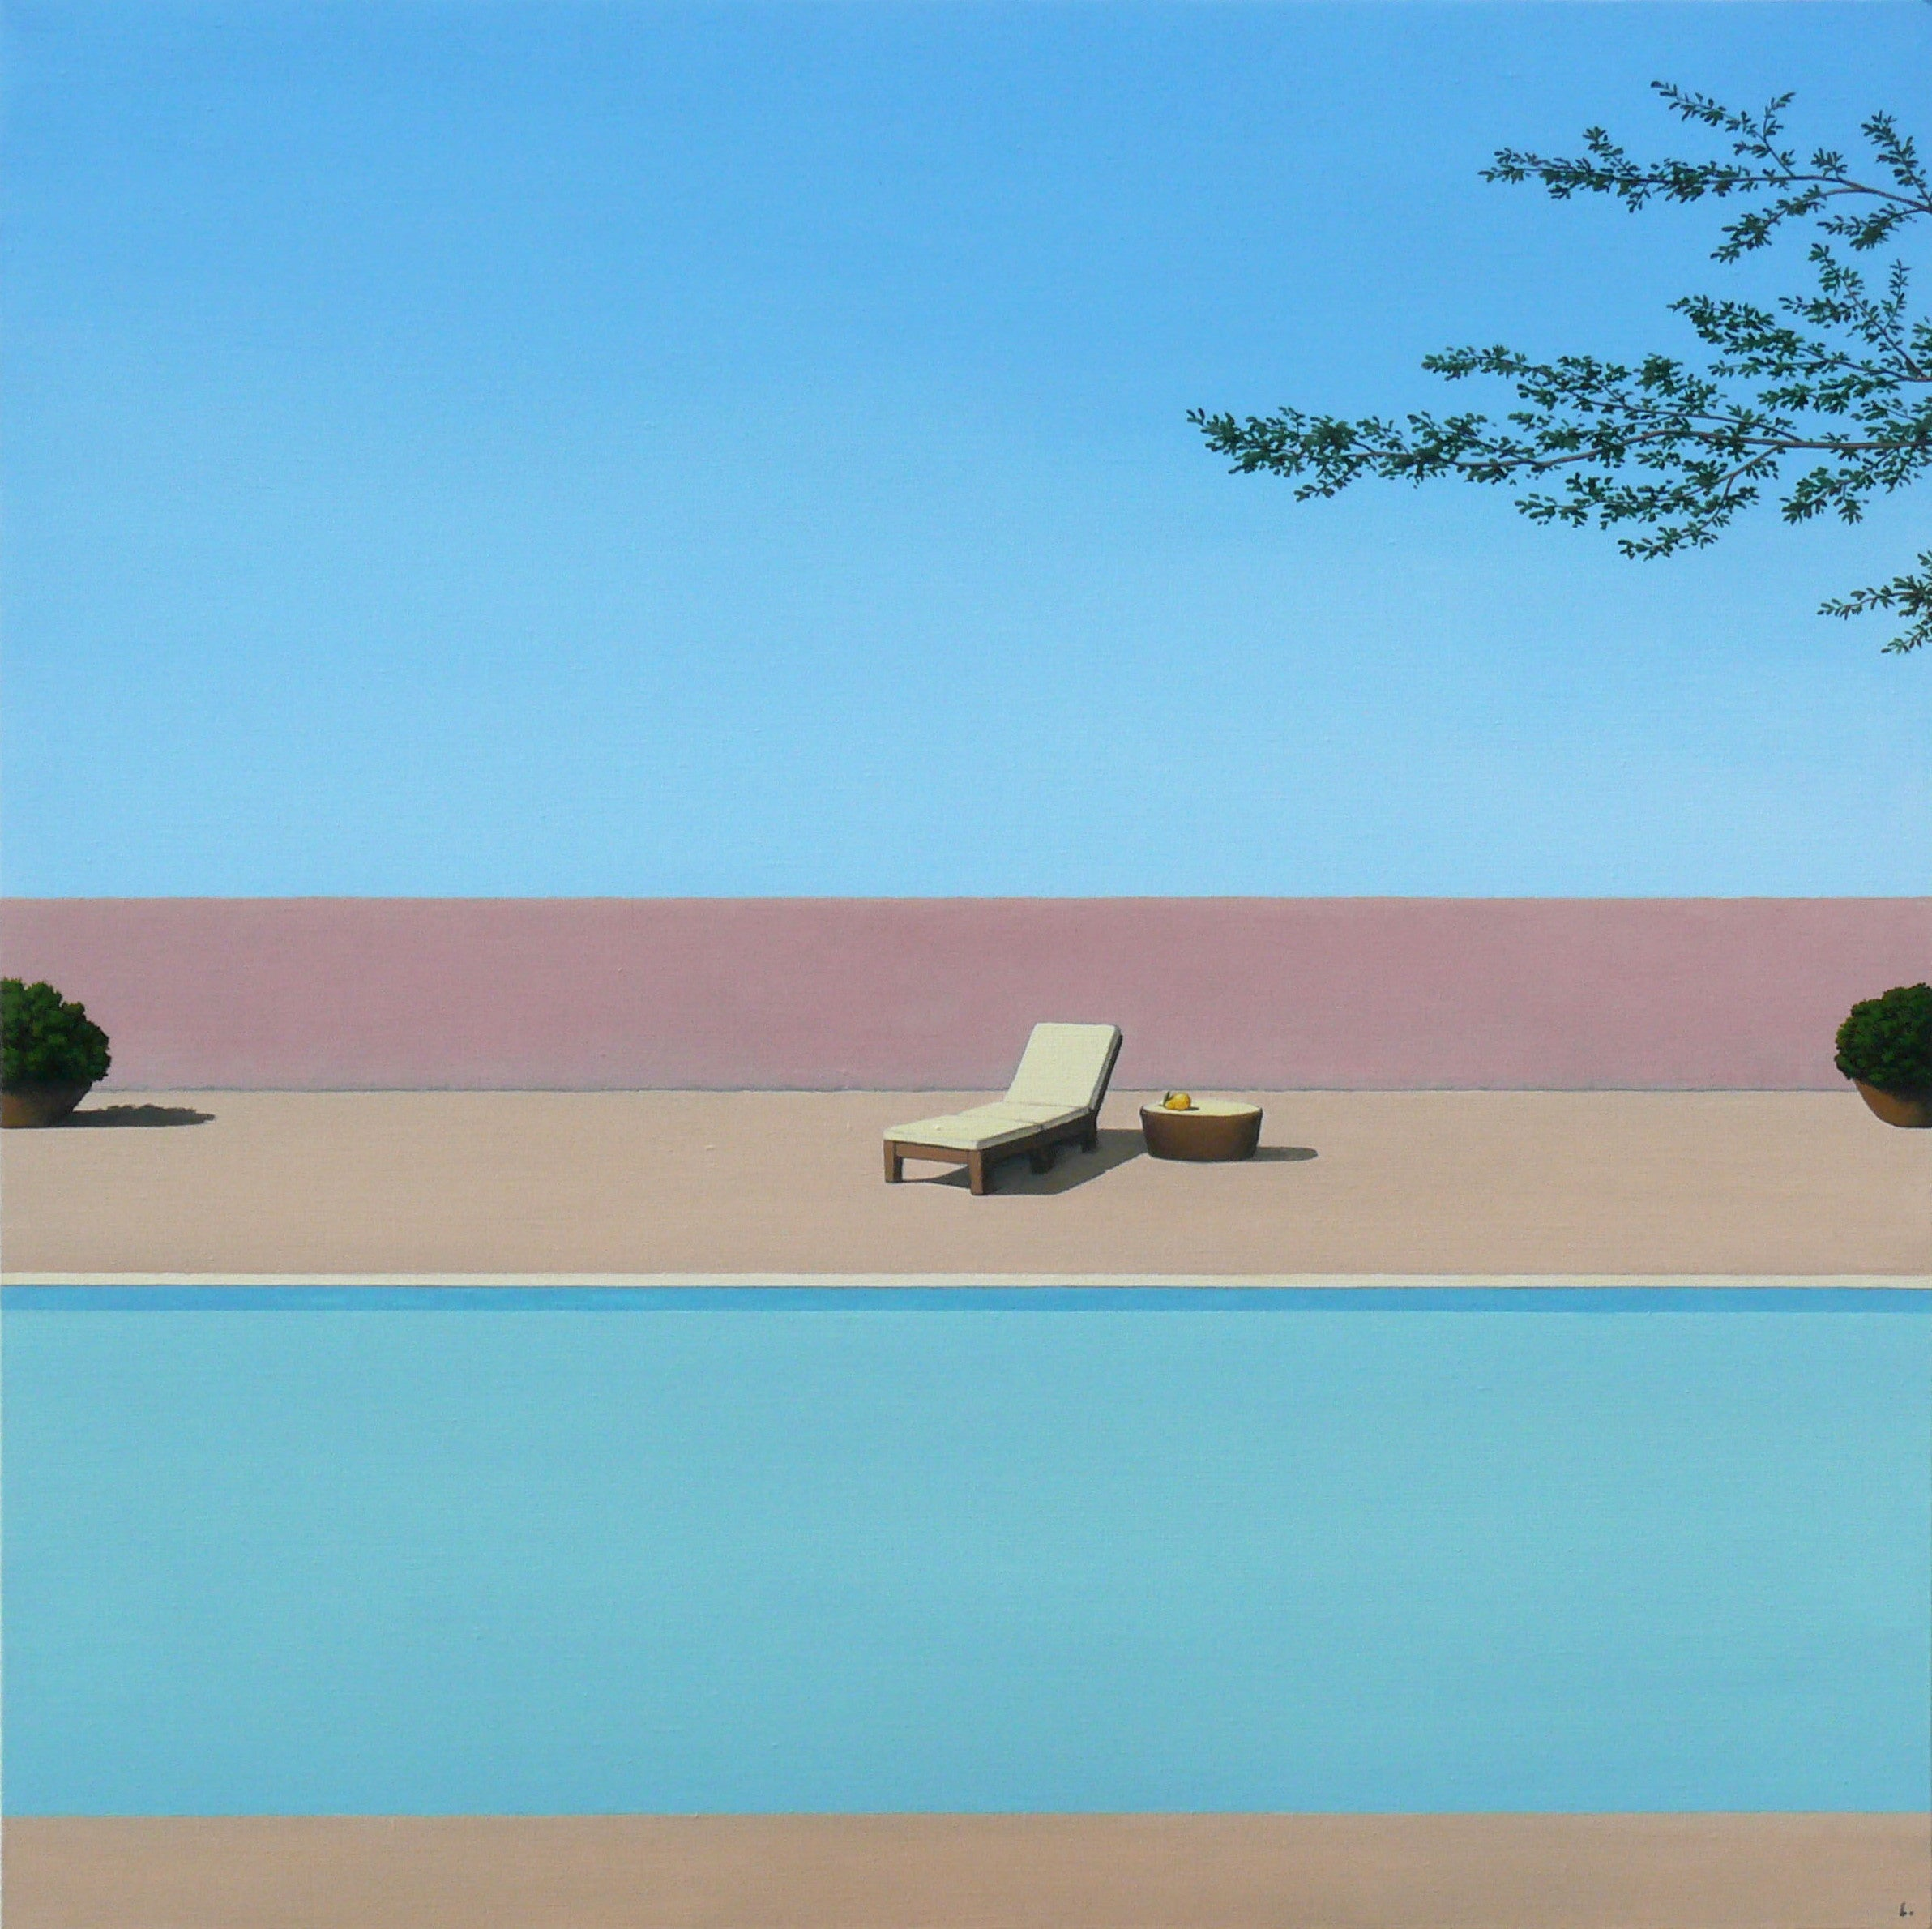 Pool with a pear - landscape painting